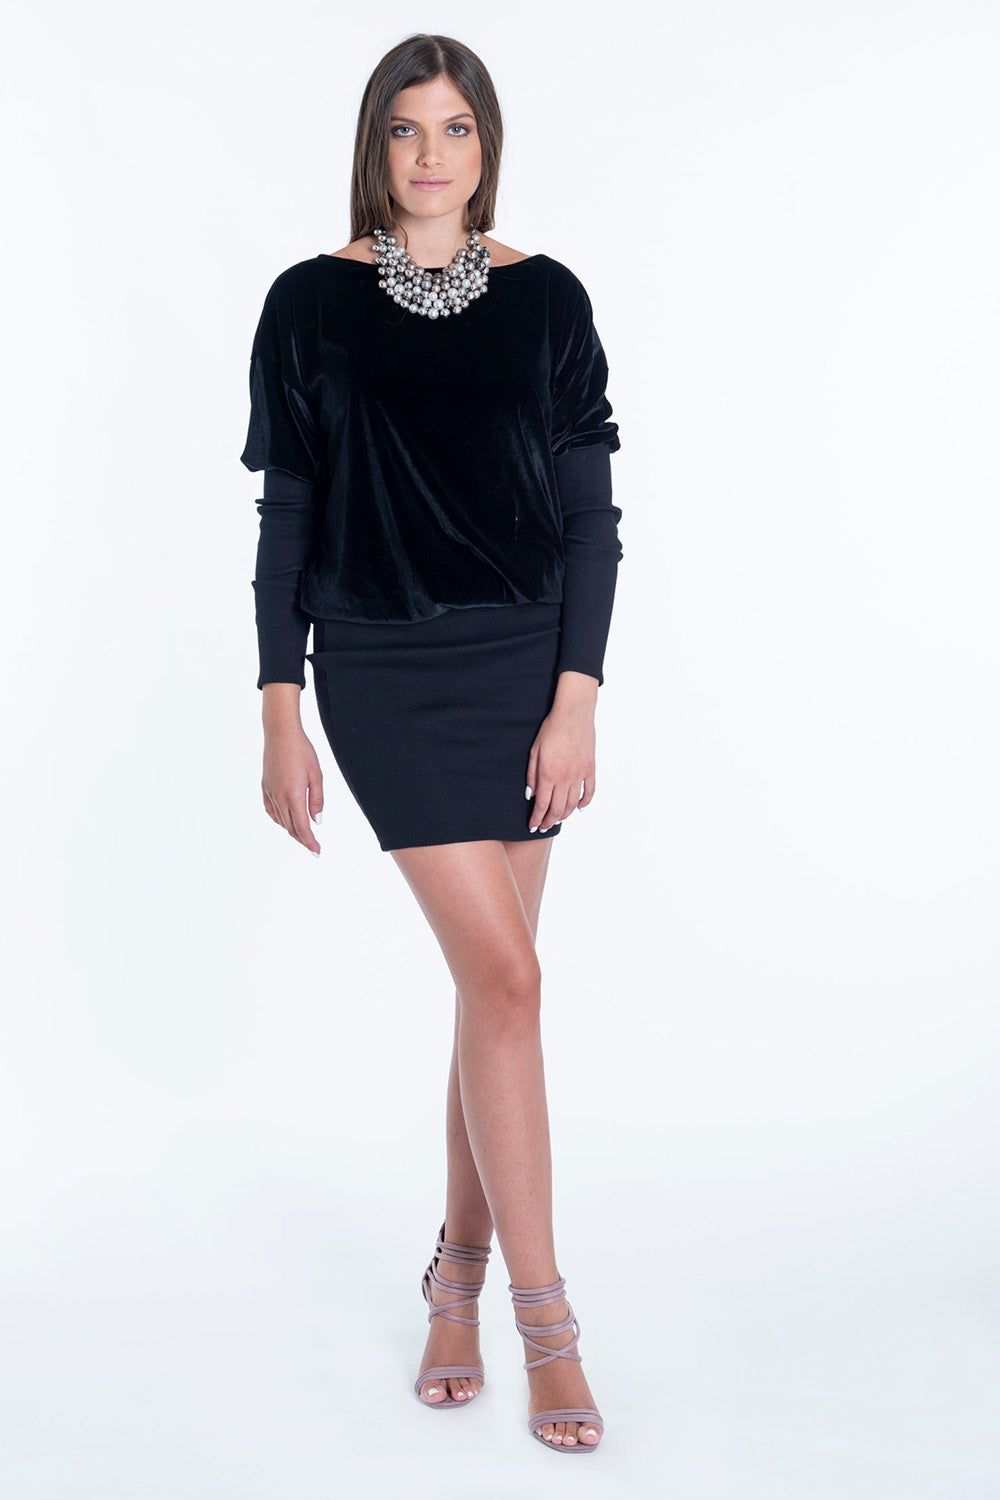 Pixie oversized velvet top with pencil bottom skirt